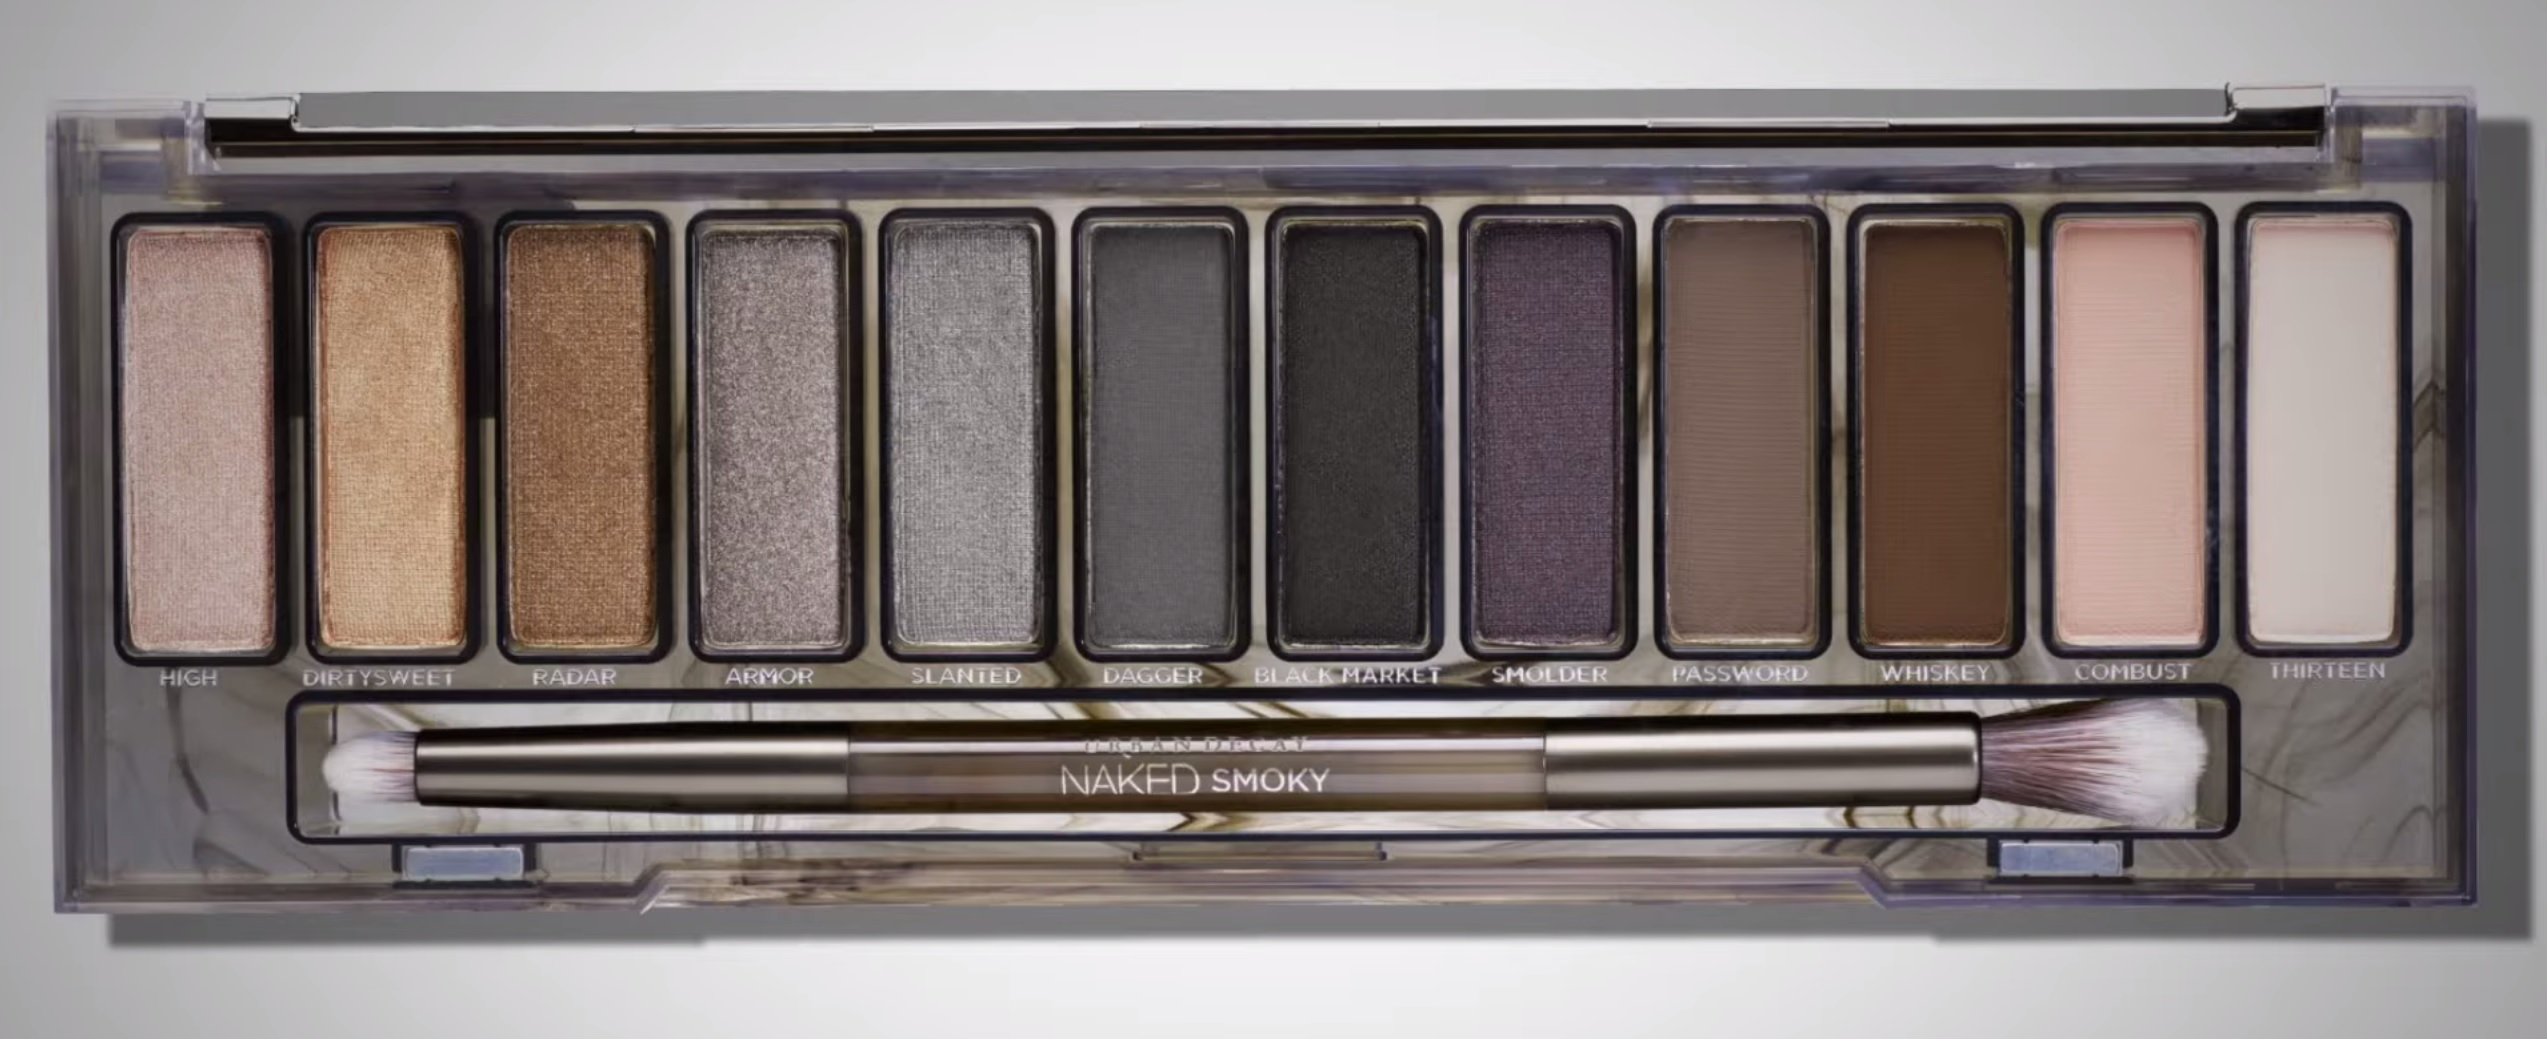 Urban Decay Naked Smoky Palette Review - Coffee & Makeup